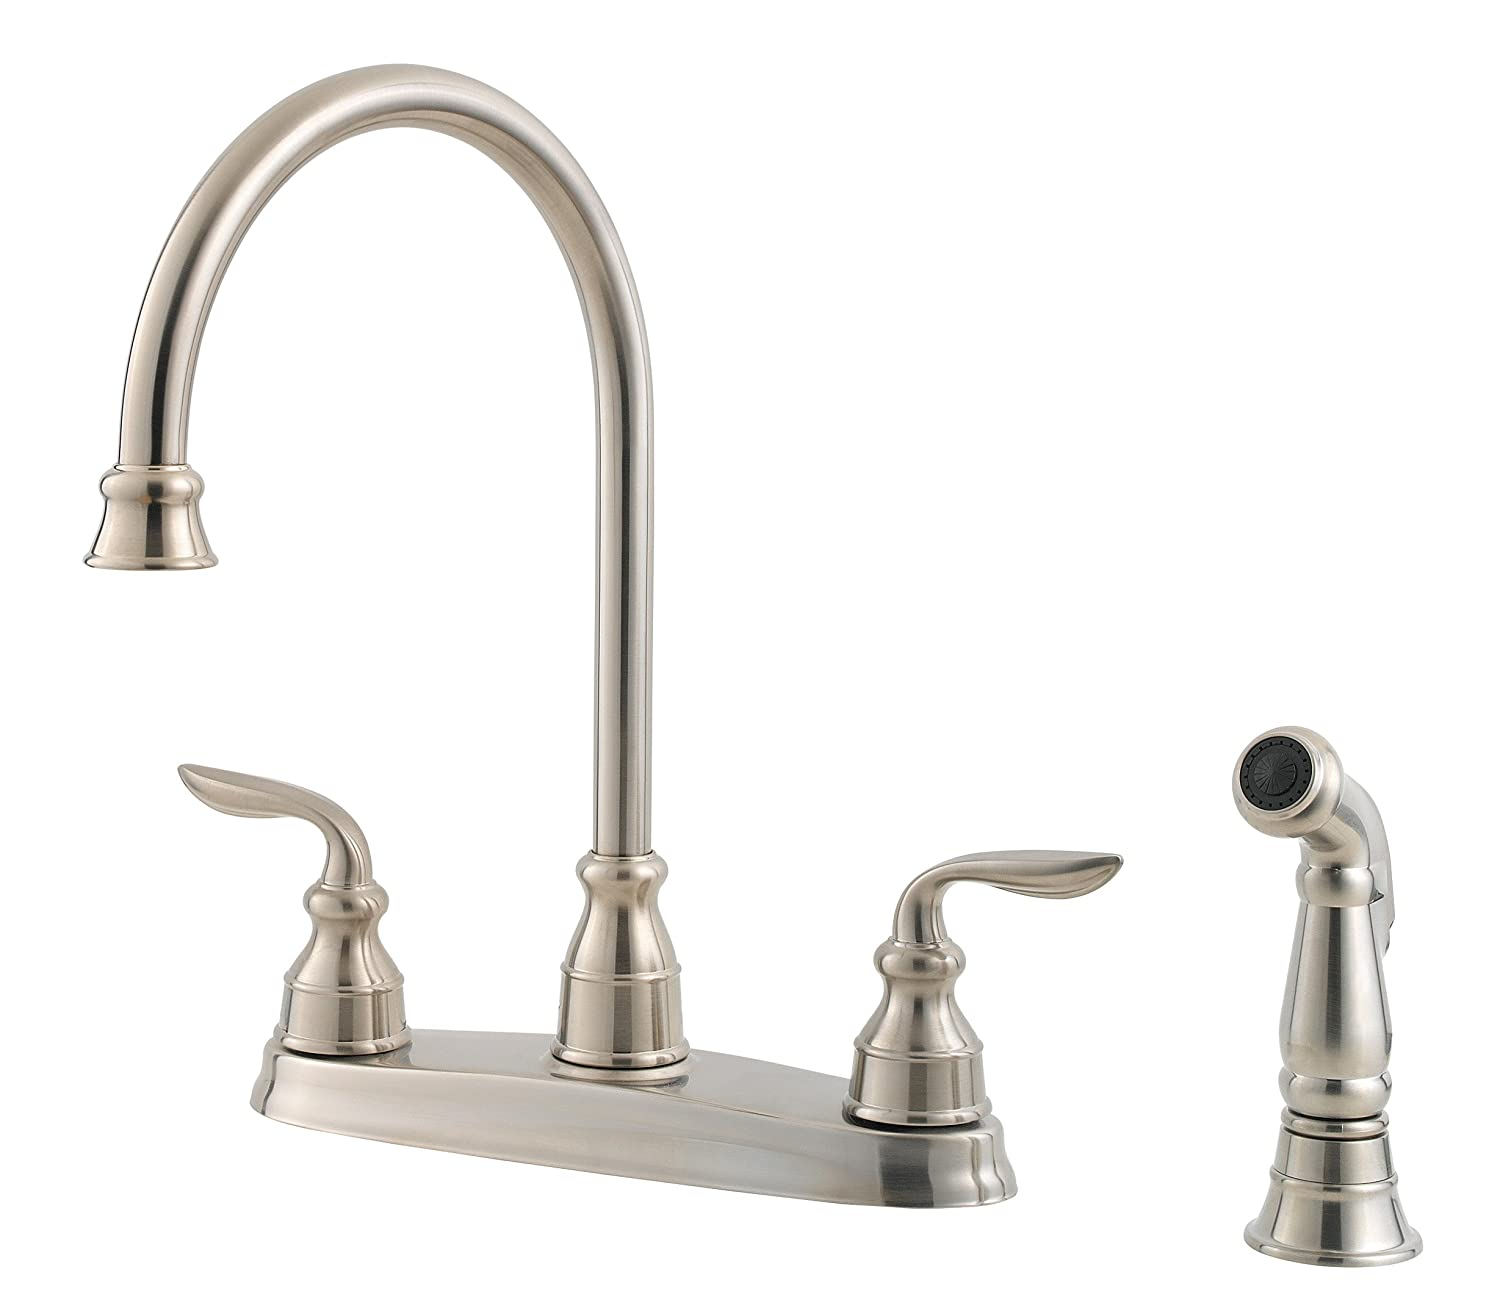 Pfister Lf 036 4cbs Avalon 2 Handle Kitchen Faucet With Side Spray